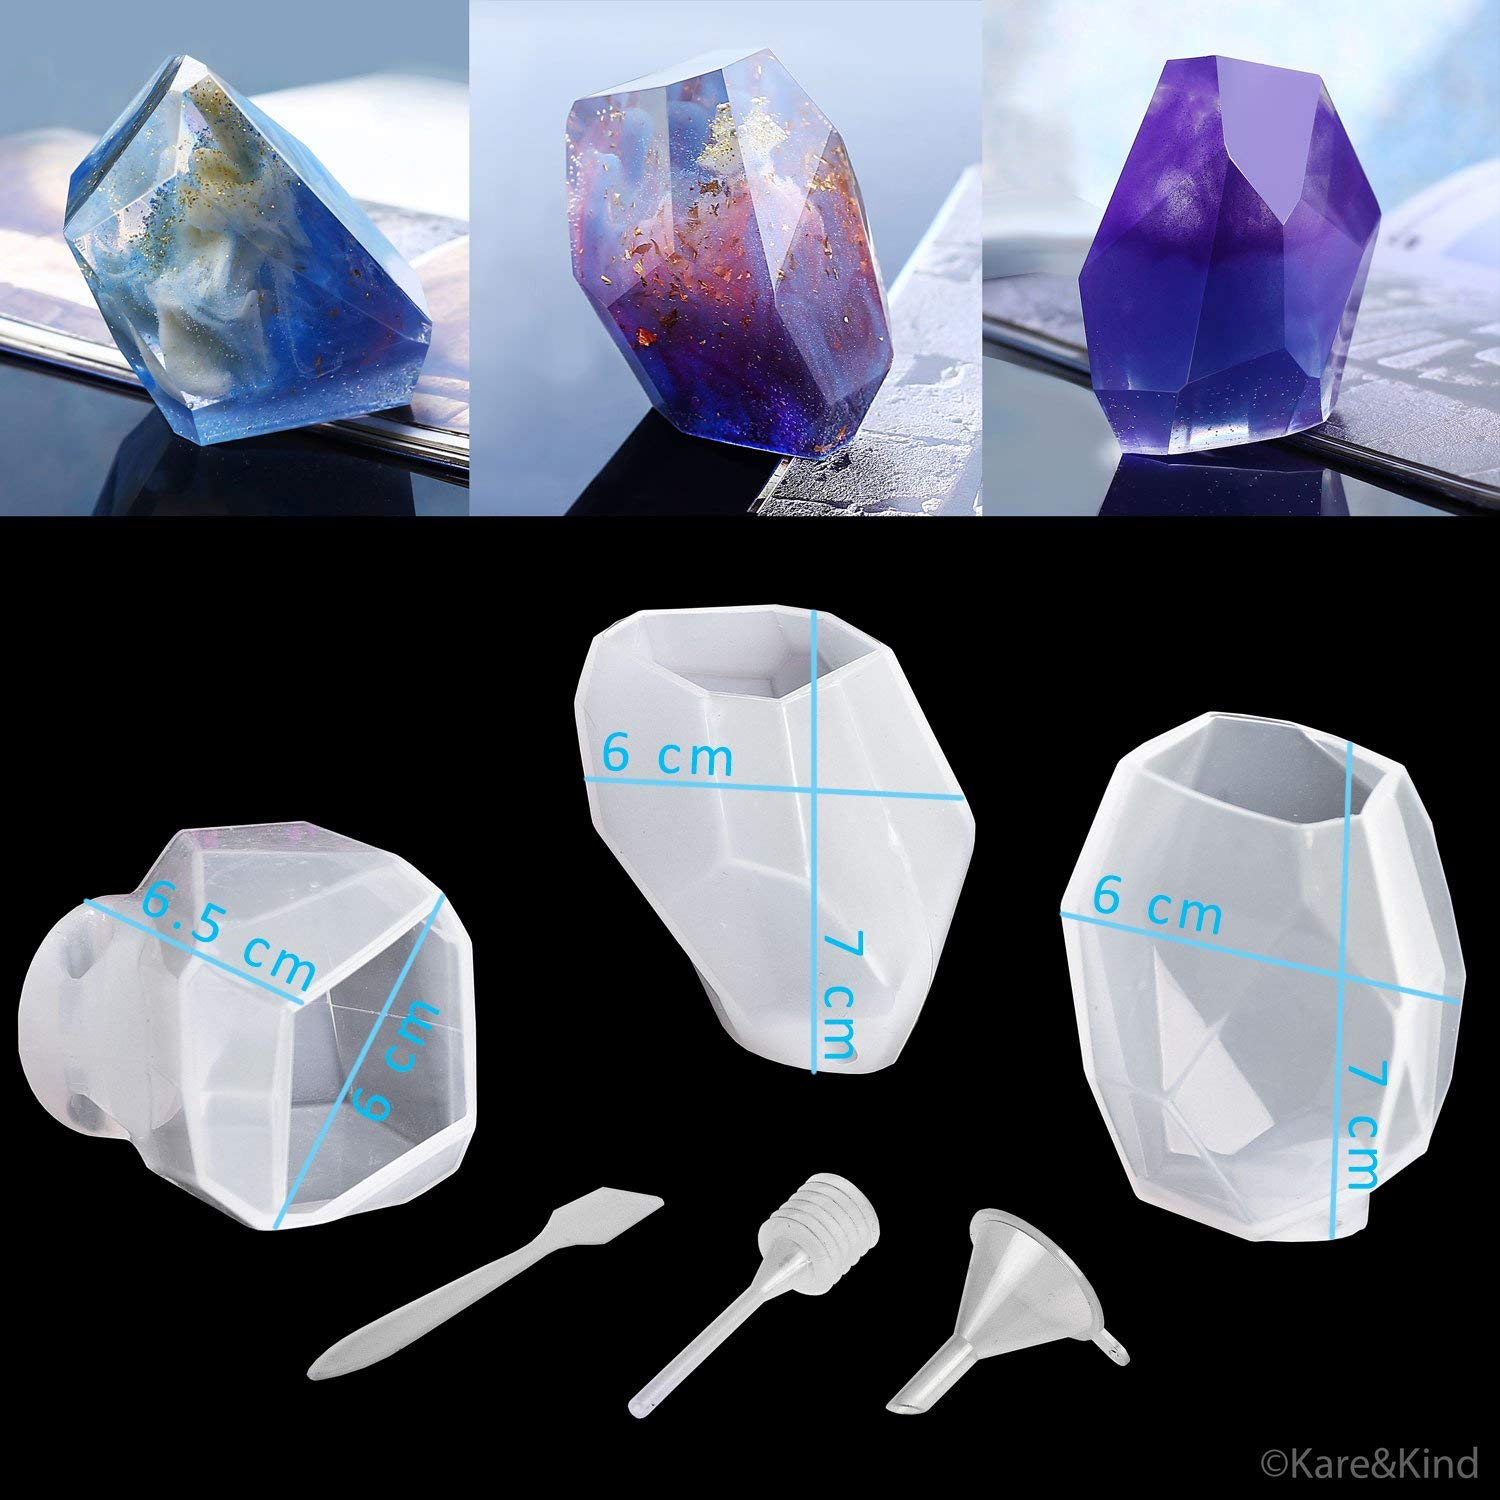 Polymer Clay / Resin Epoxy Molds - DIY 'Quartz Crystal' Kit - Set of 3 Silicone Shapes - Create Your Own Clear or Opaque Crystal Shaped Objects - Easy to Remove After Molding - Soft, Durable, Reusable